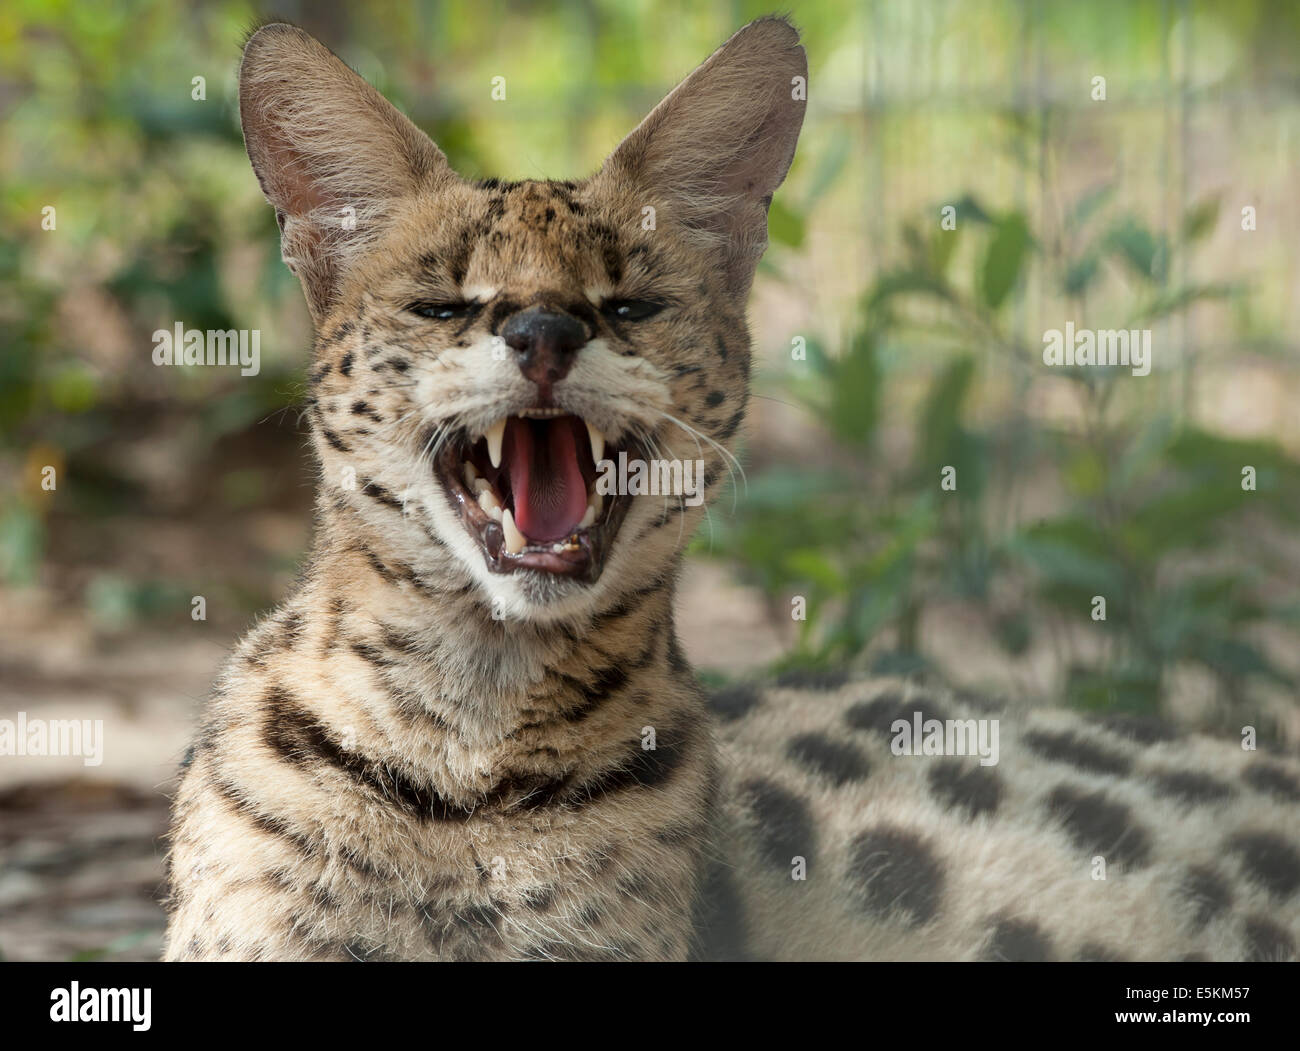 Captive African Serval Cat at Forest Animal Rescue, Ocala, Florida USA - Stock Image